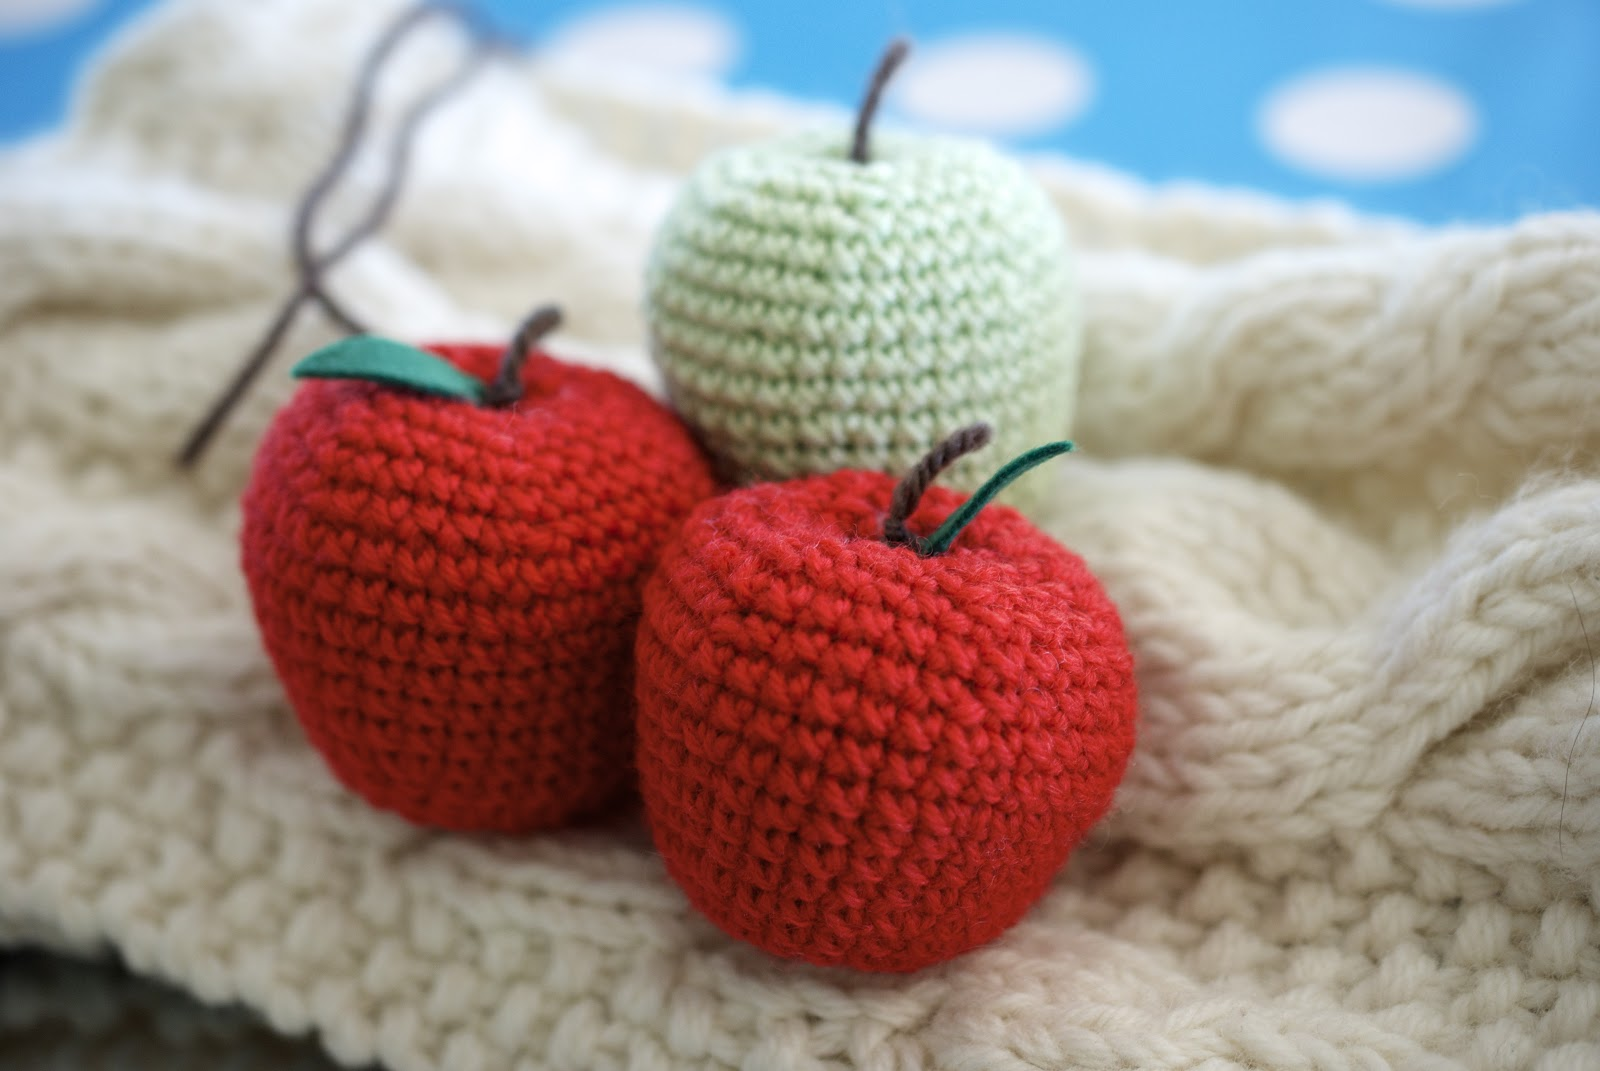 Greedy For Colour: How to Crochet an Apple.